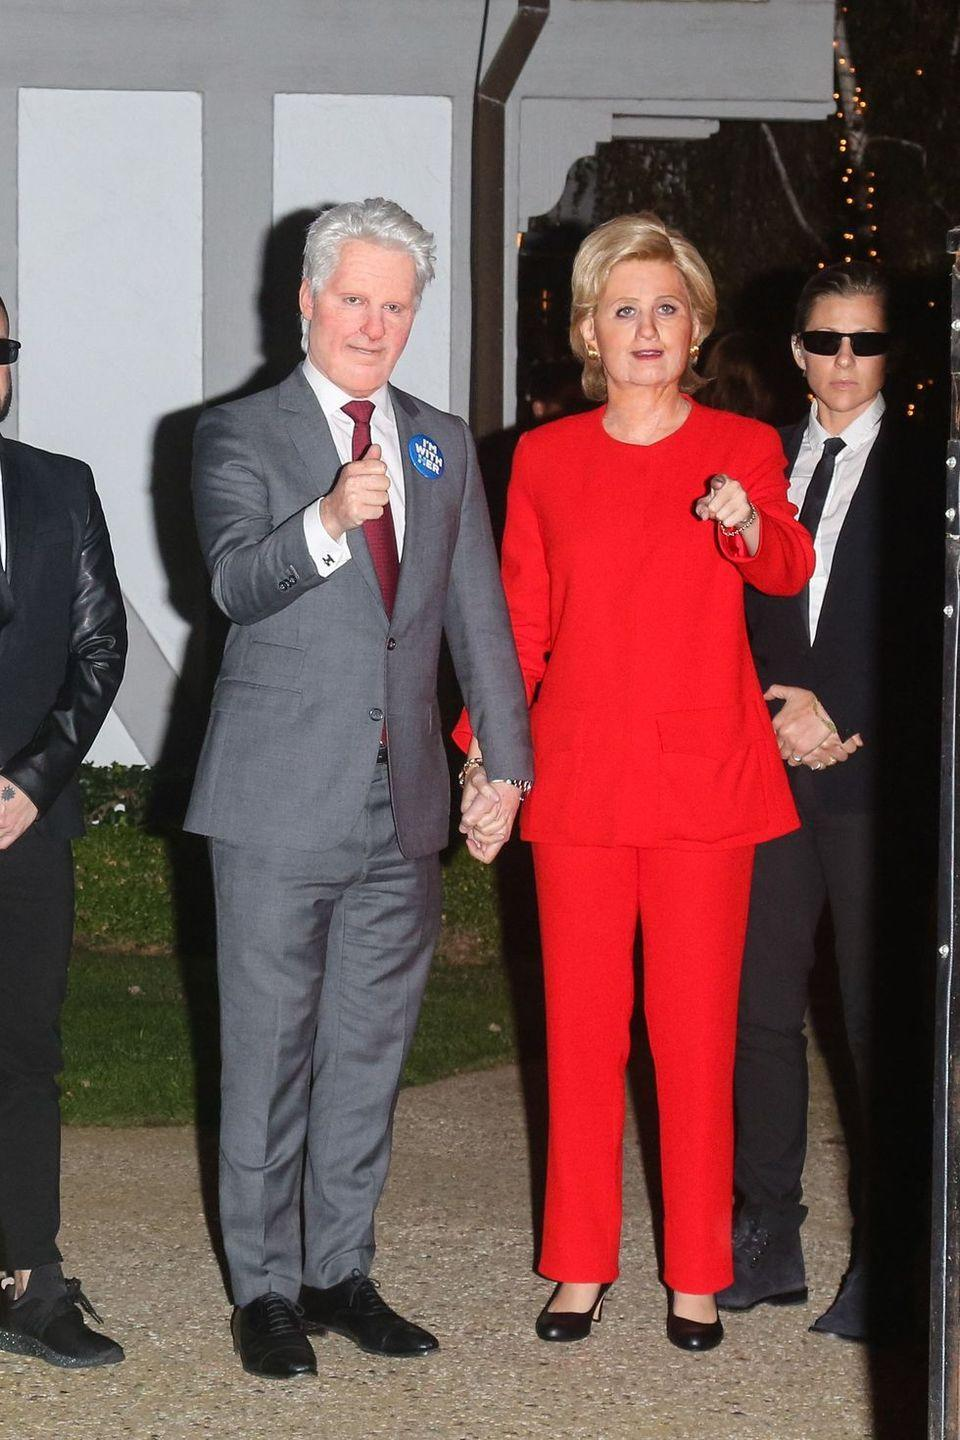 <p>The California Girl singer had her pantsuit at the ready to become Hillary Clinton for Kate Hudson's Halloween party in 2016, which was actually in the run up to the US presidential election.</p>